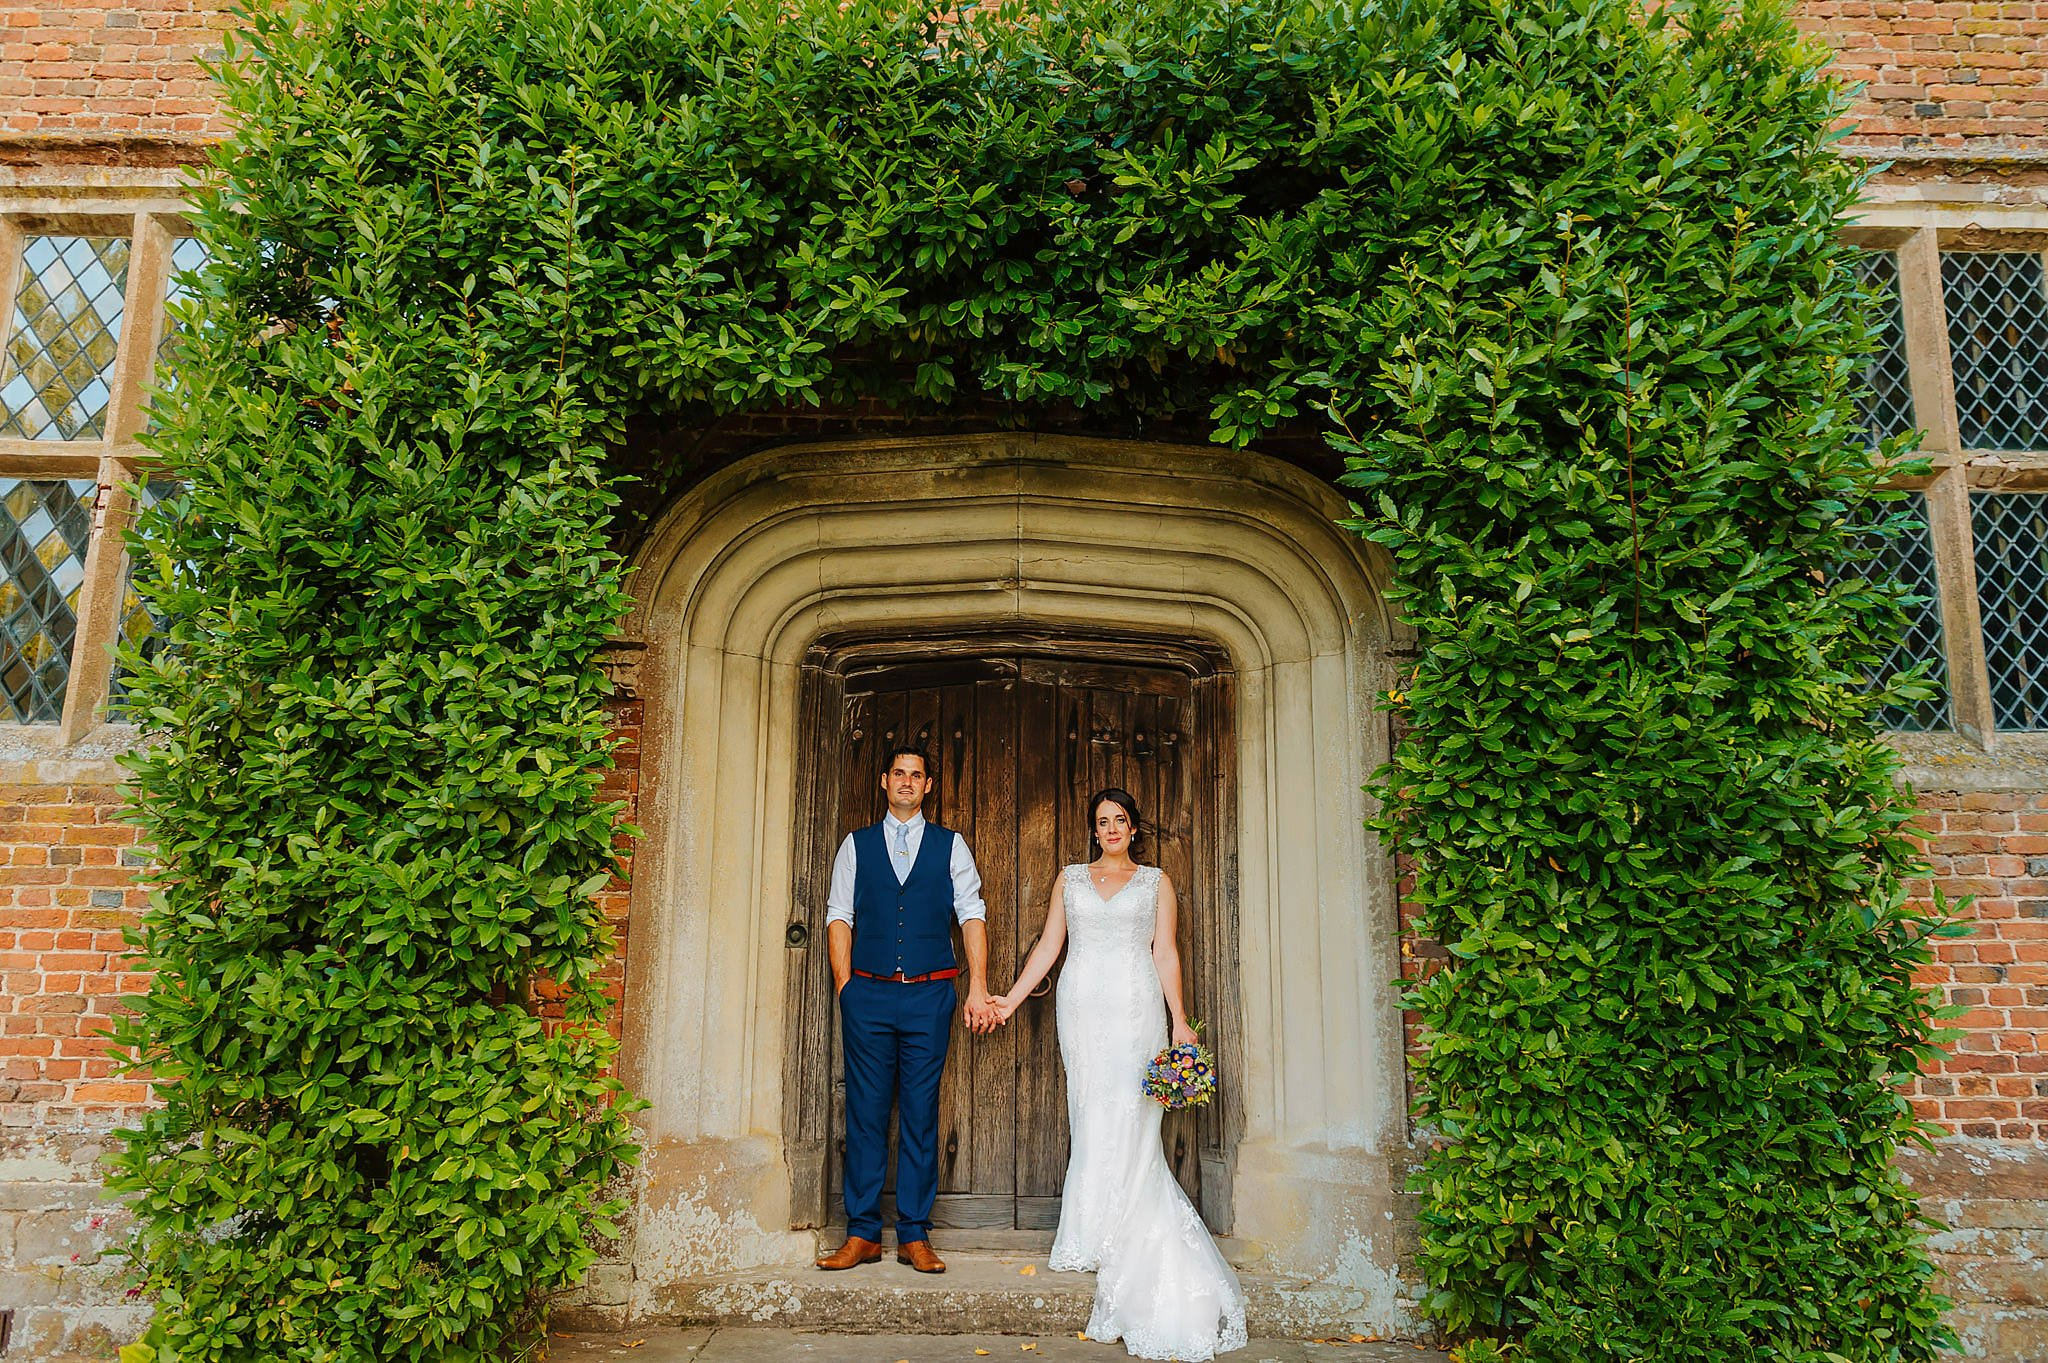 Wedding photography at Hellens Manor in Herefordshire, West Midlands | Shelley + Ian 139